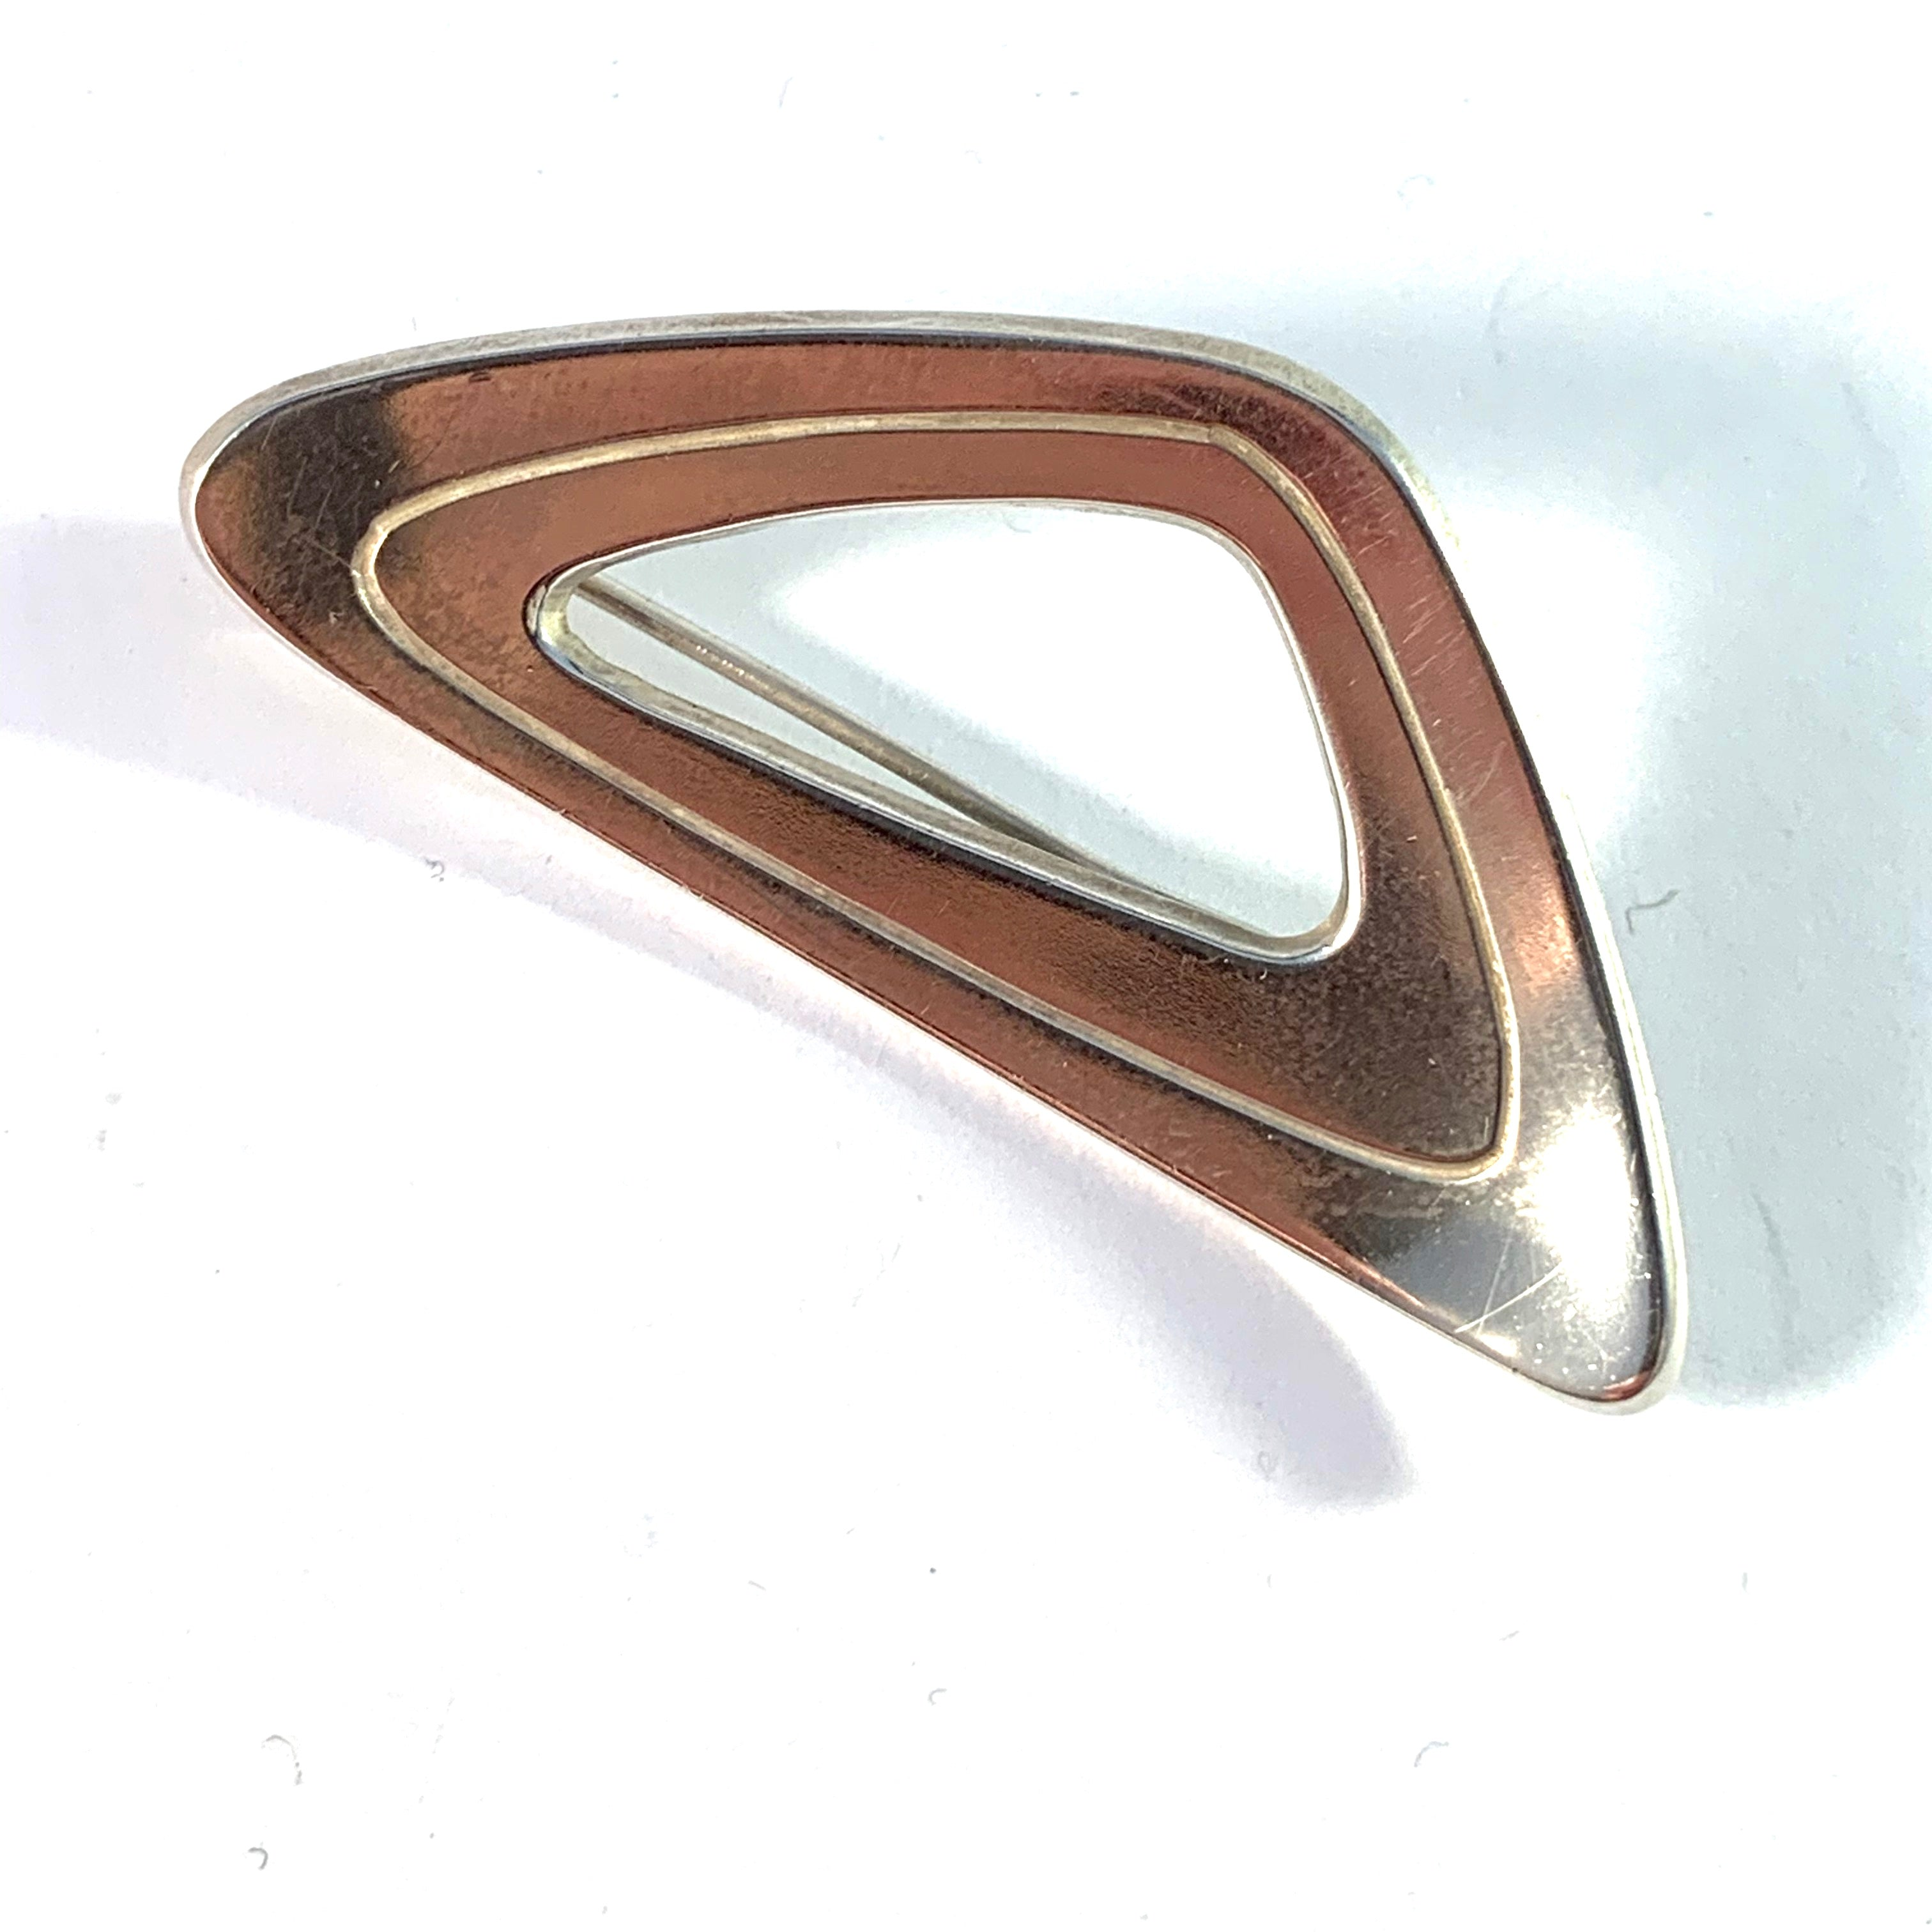 Persö, for Hedberg, Sweden 1961 Mid Century Modern Sterling Silver Brooch. Signed.